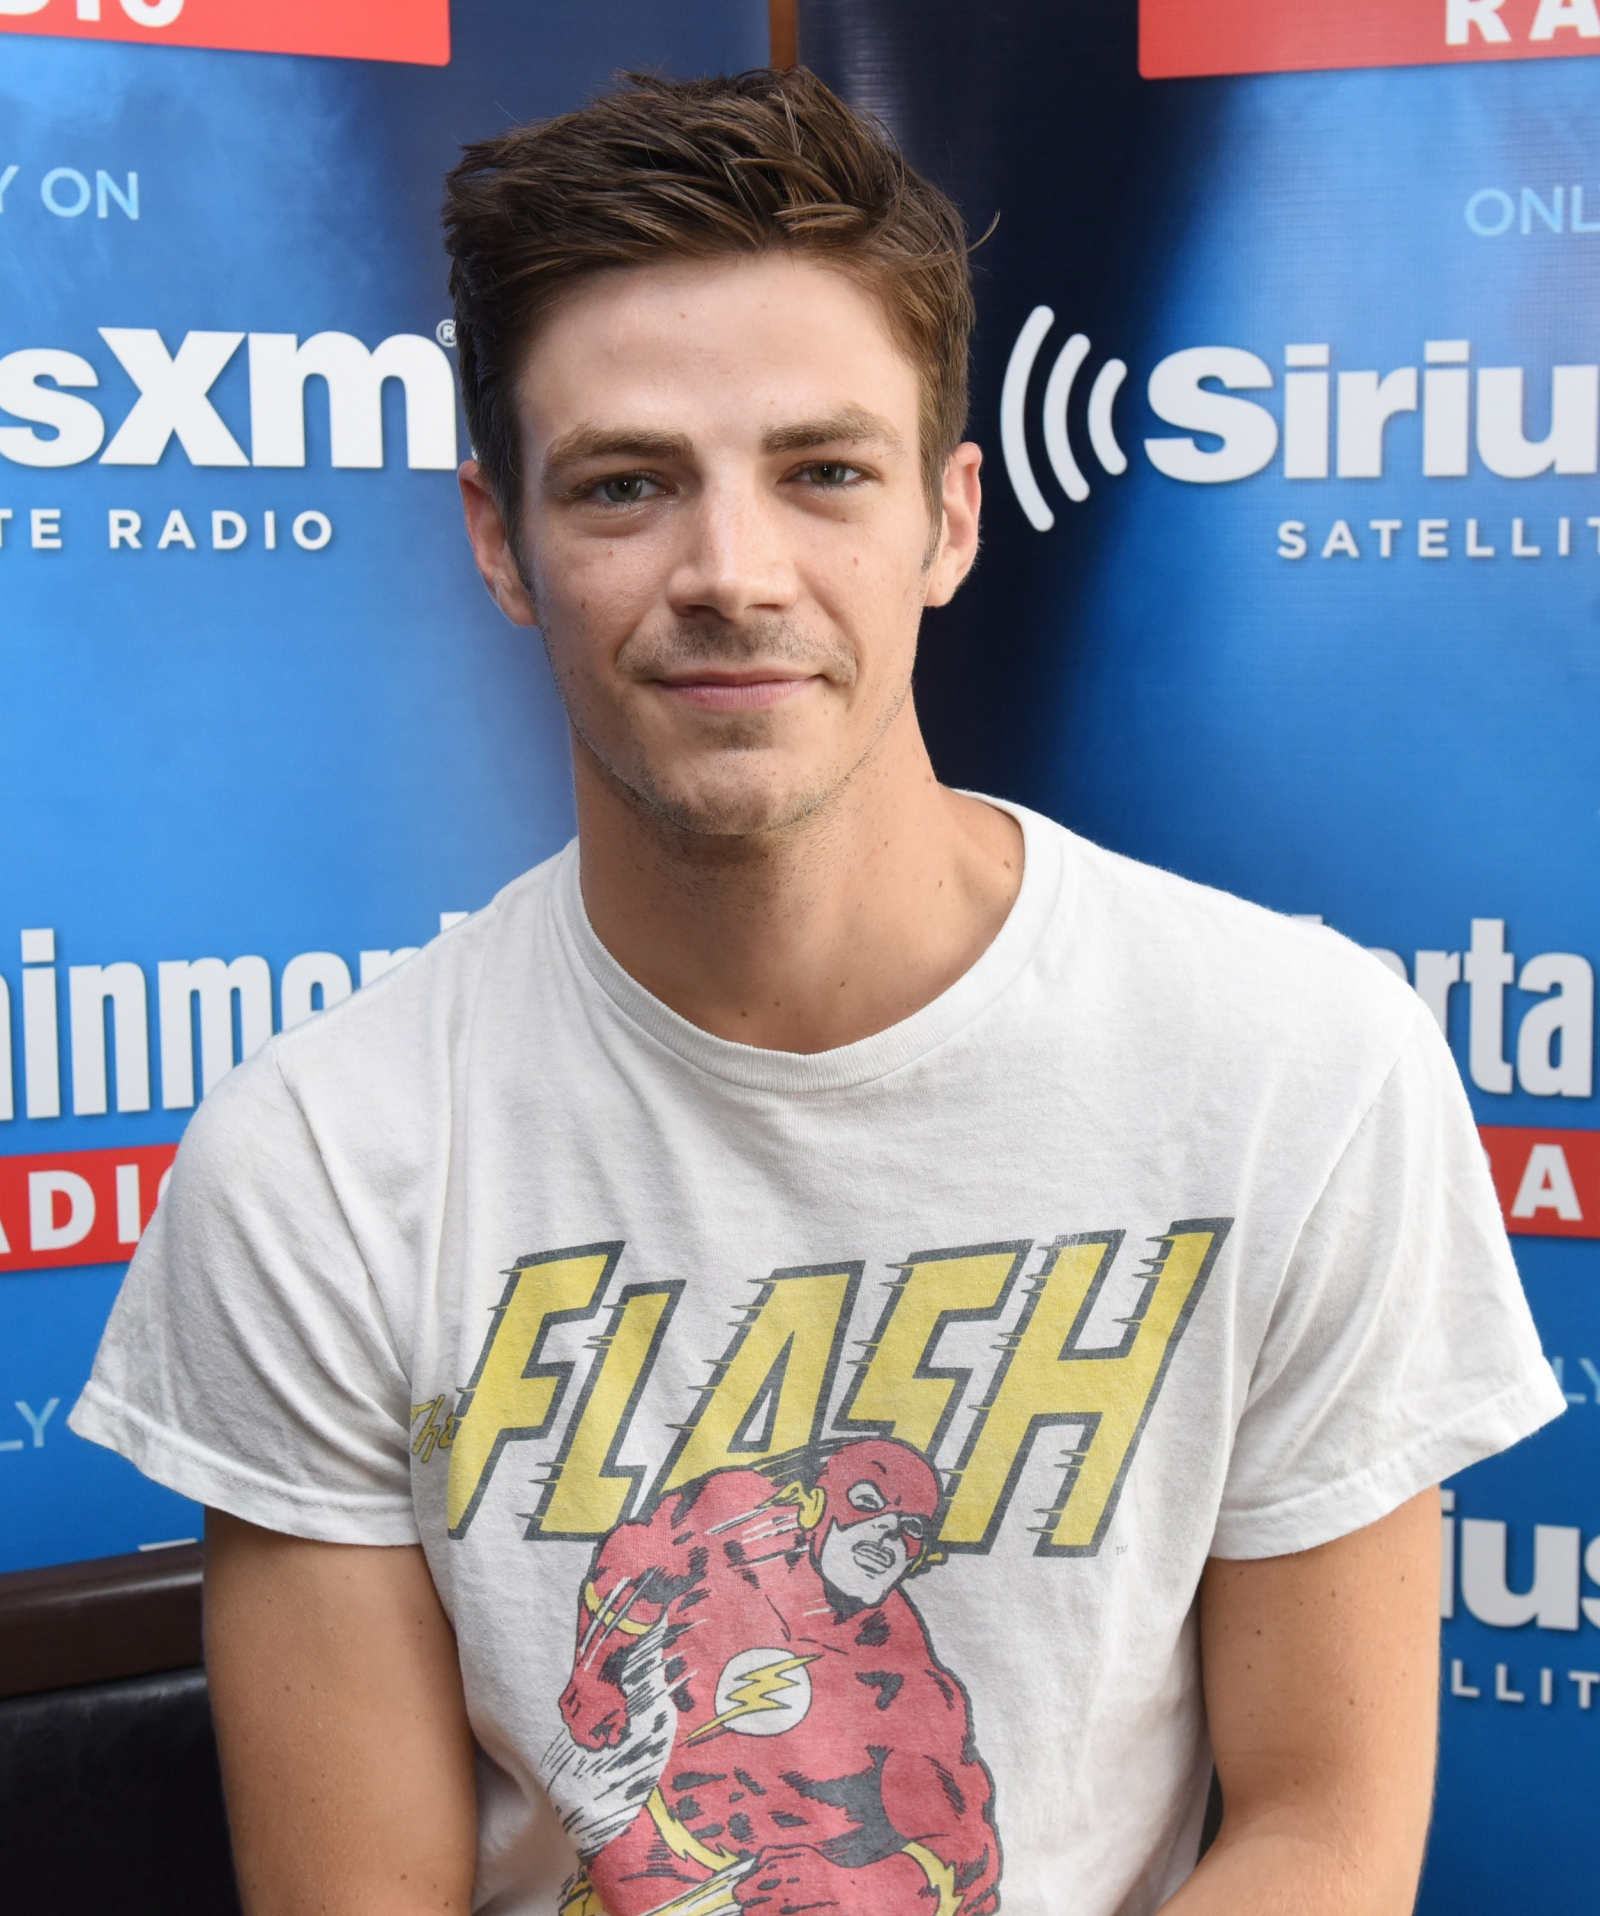 'The Flash' Star Grant Gustin Surprises Fans With Engagement Photo On Instagram